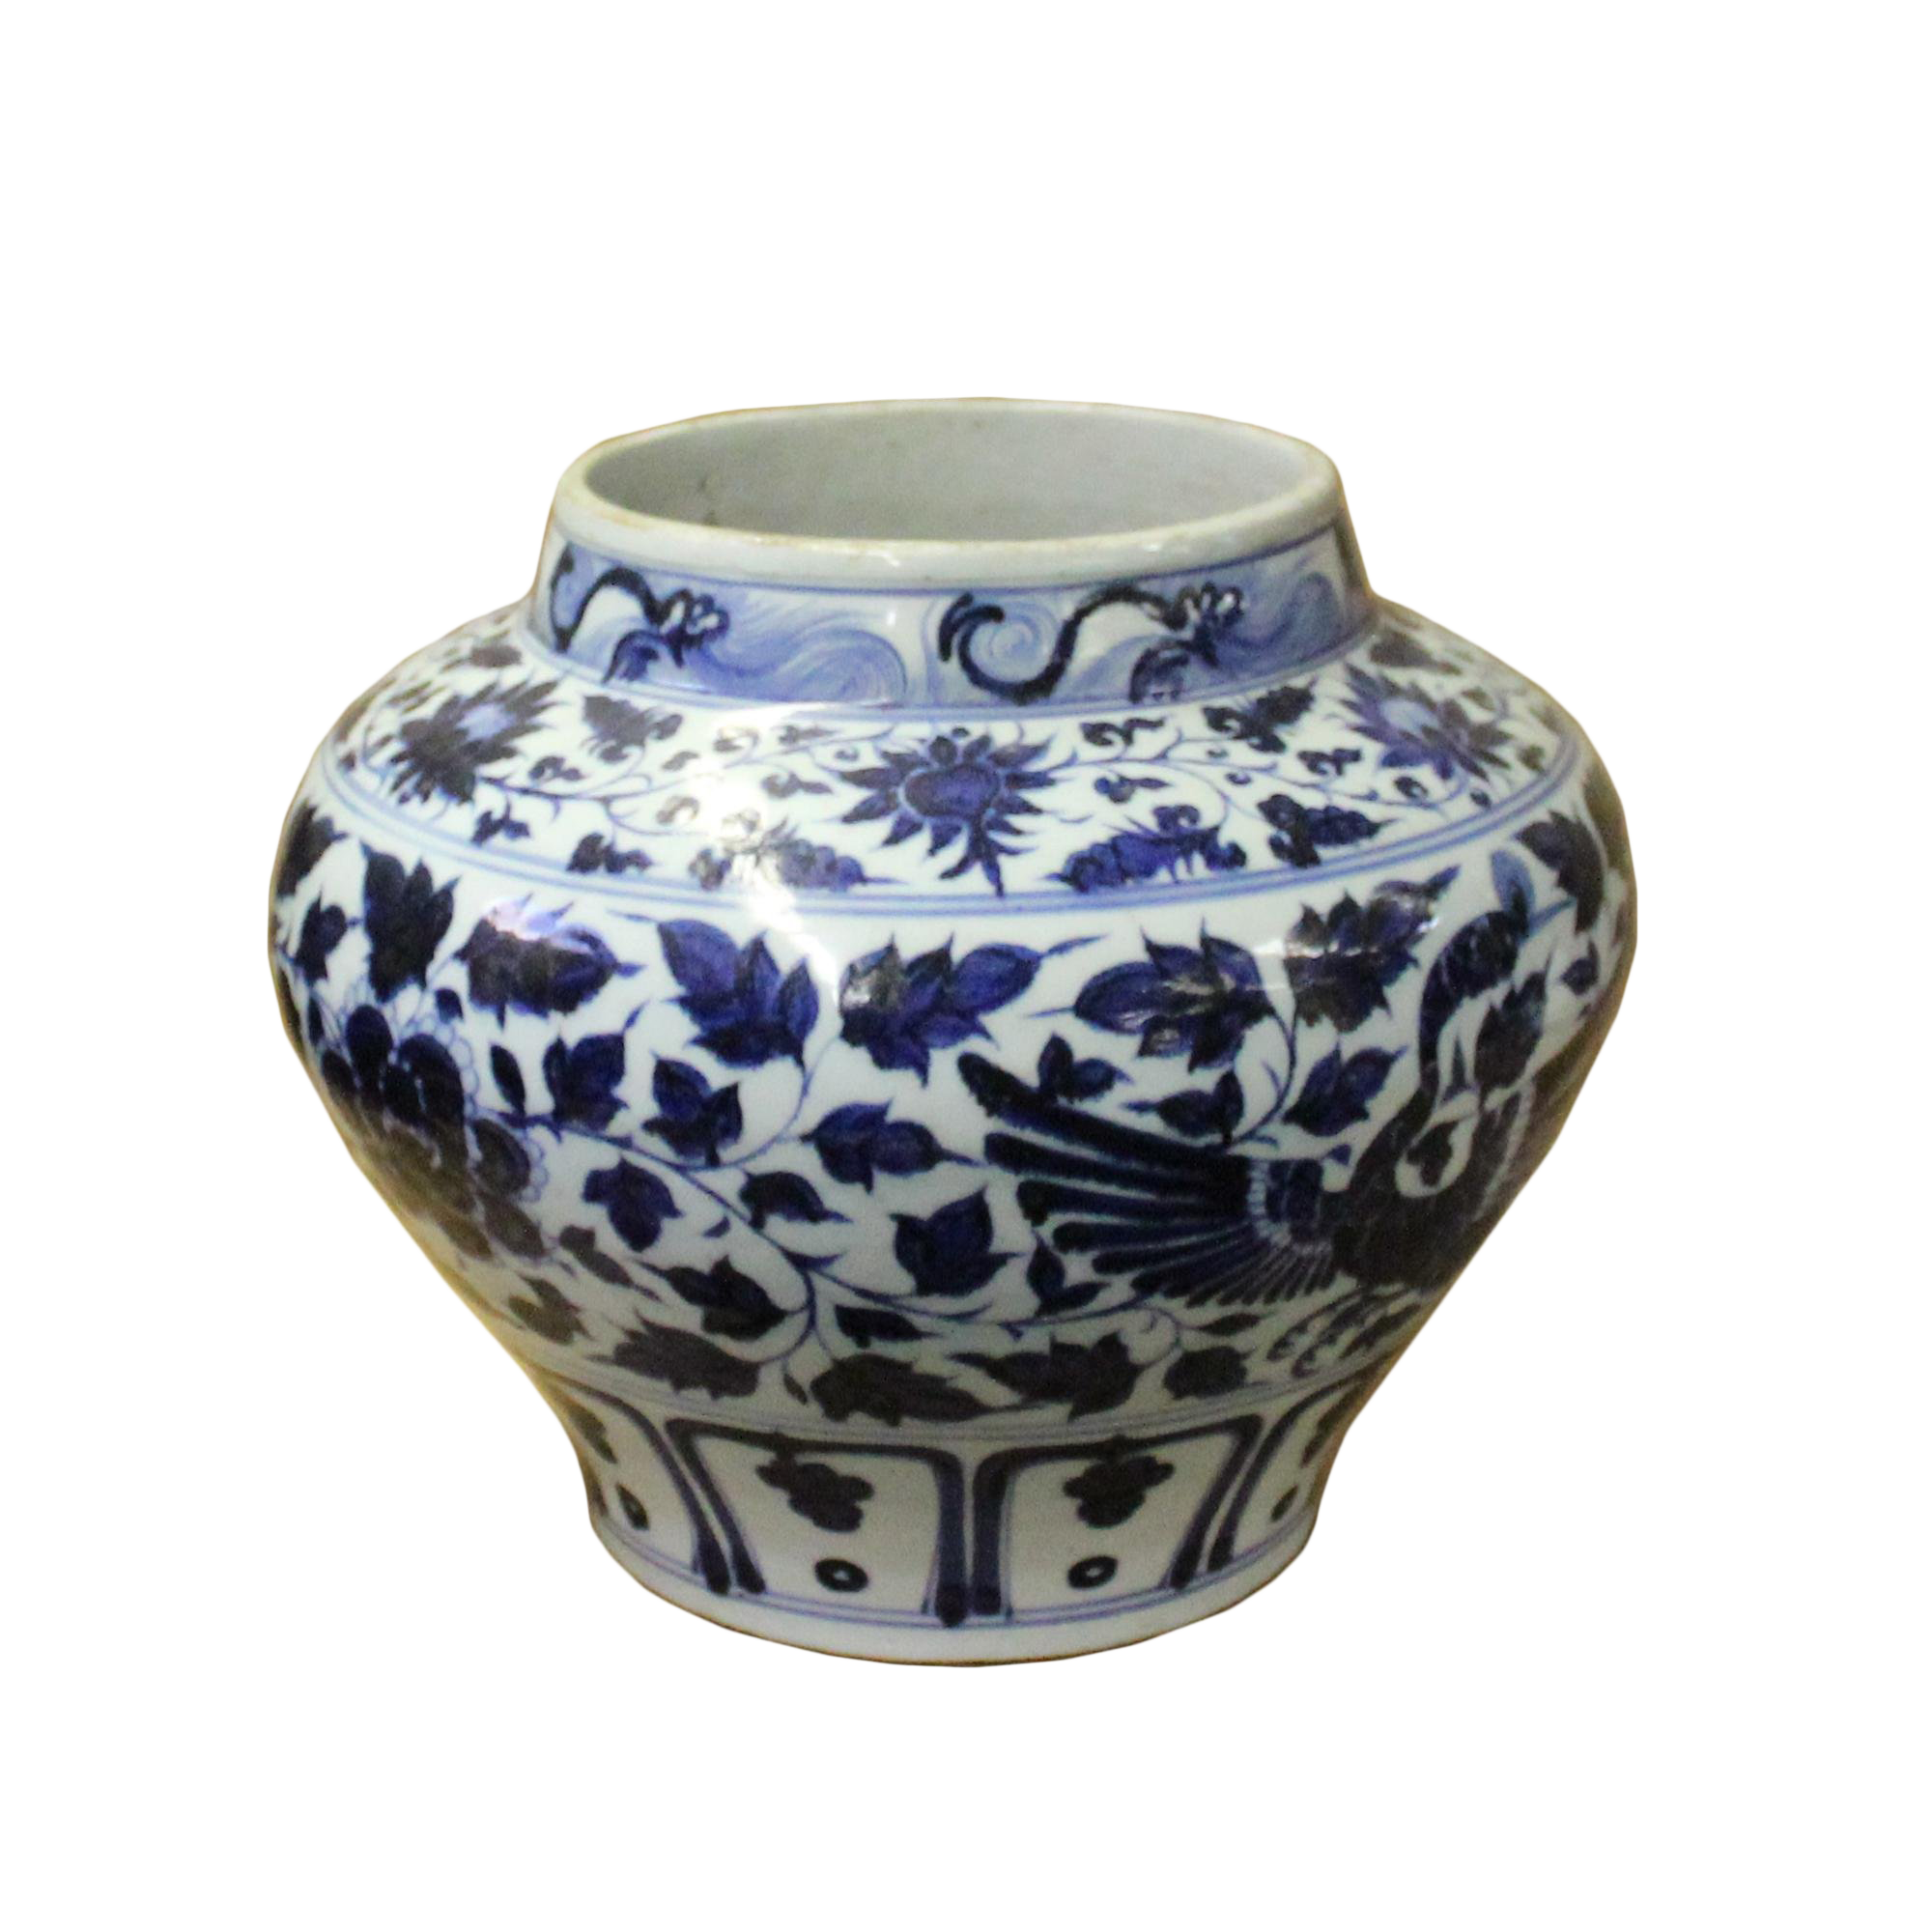 Chinese Blue White Porcelain Graphic Fat Body Vase Jar Chairish